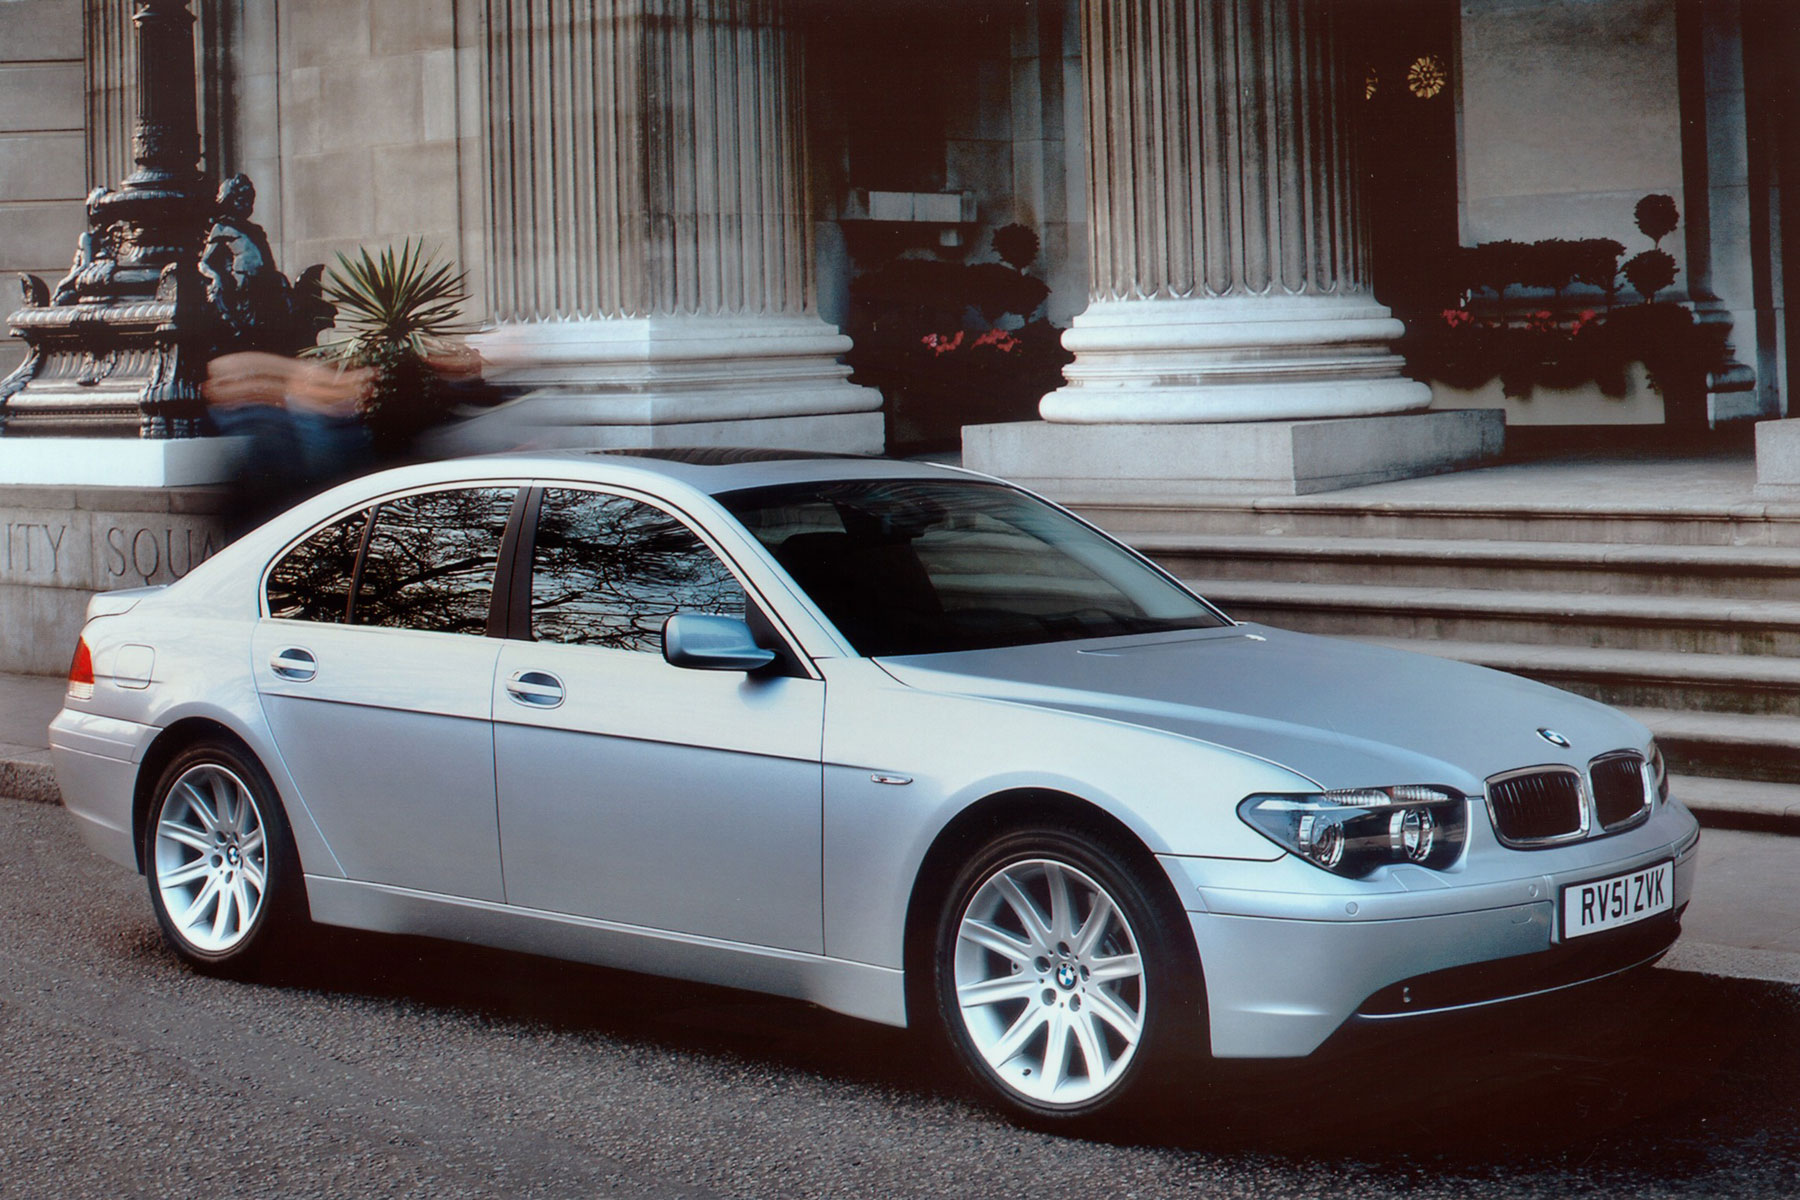 Best Used Cars Under 5000 Awesome Christmas Presence Used Luxury Cars for £5 000